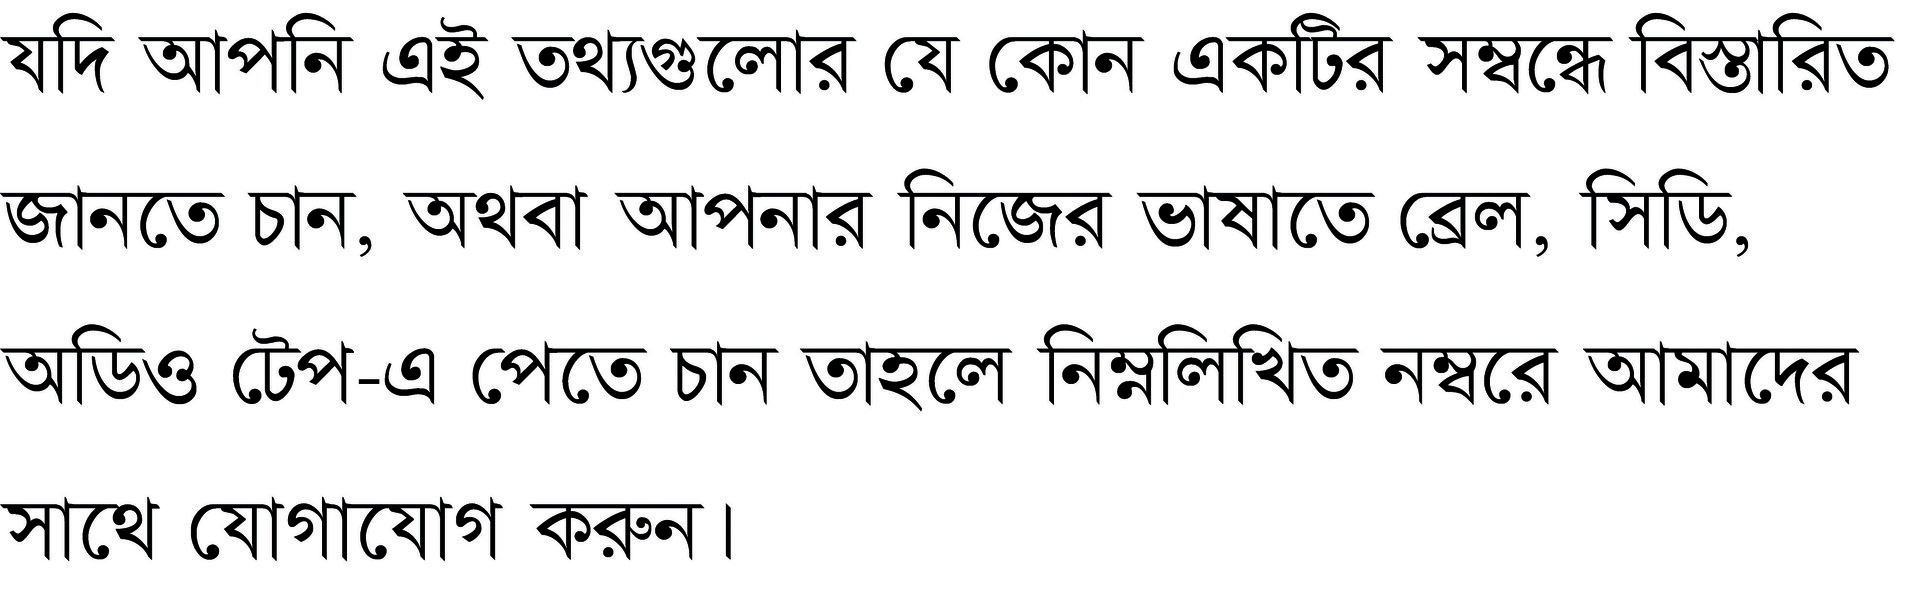 Translation in Bengali